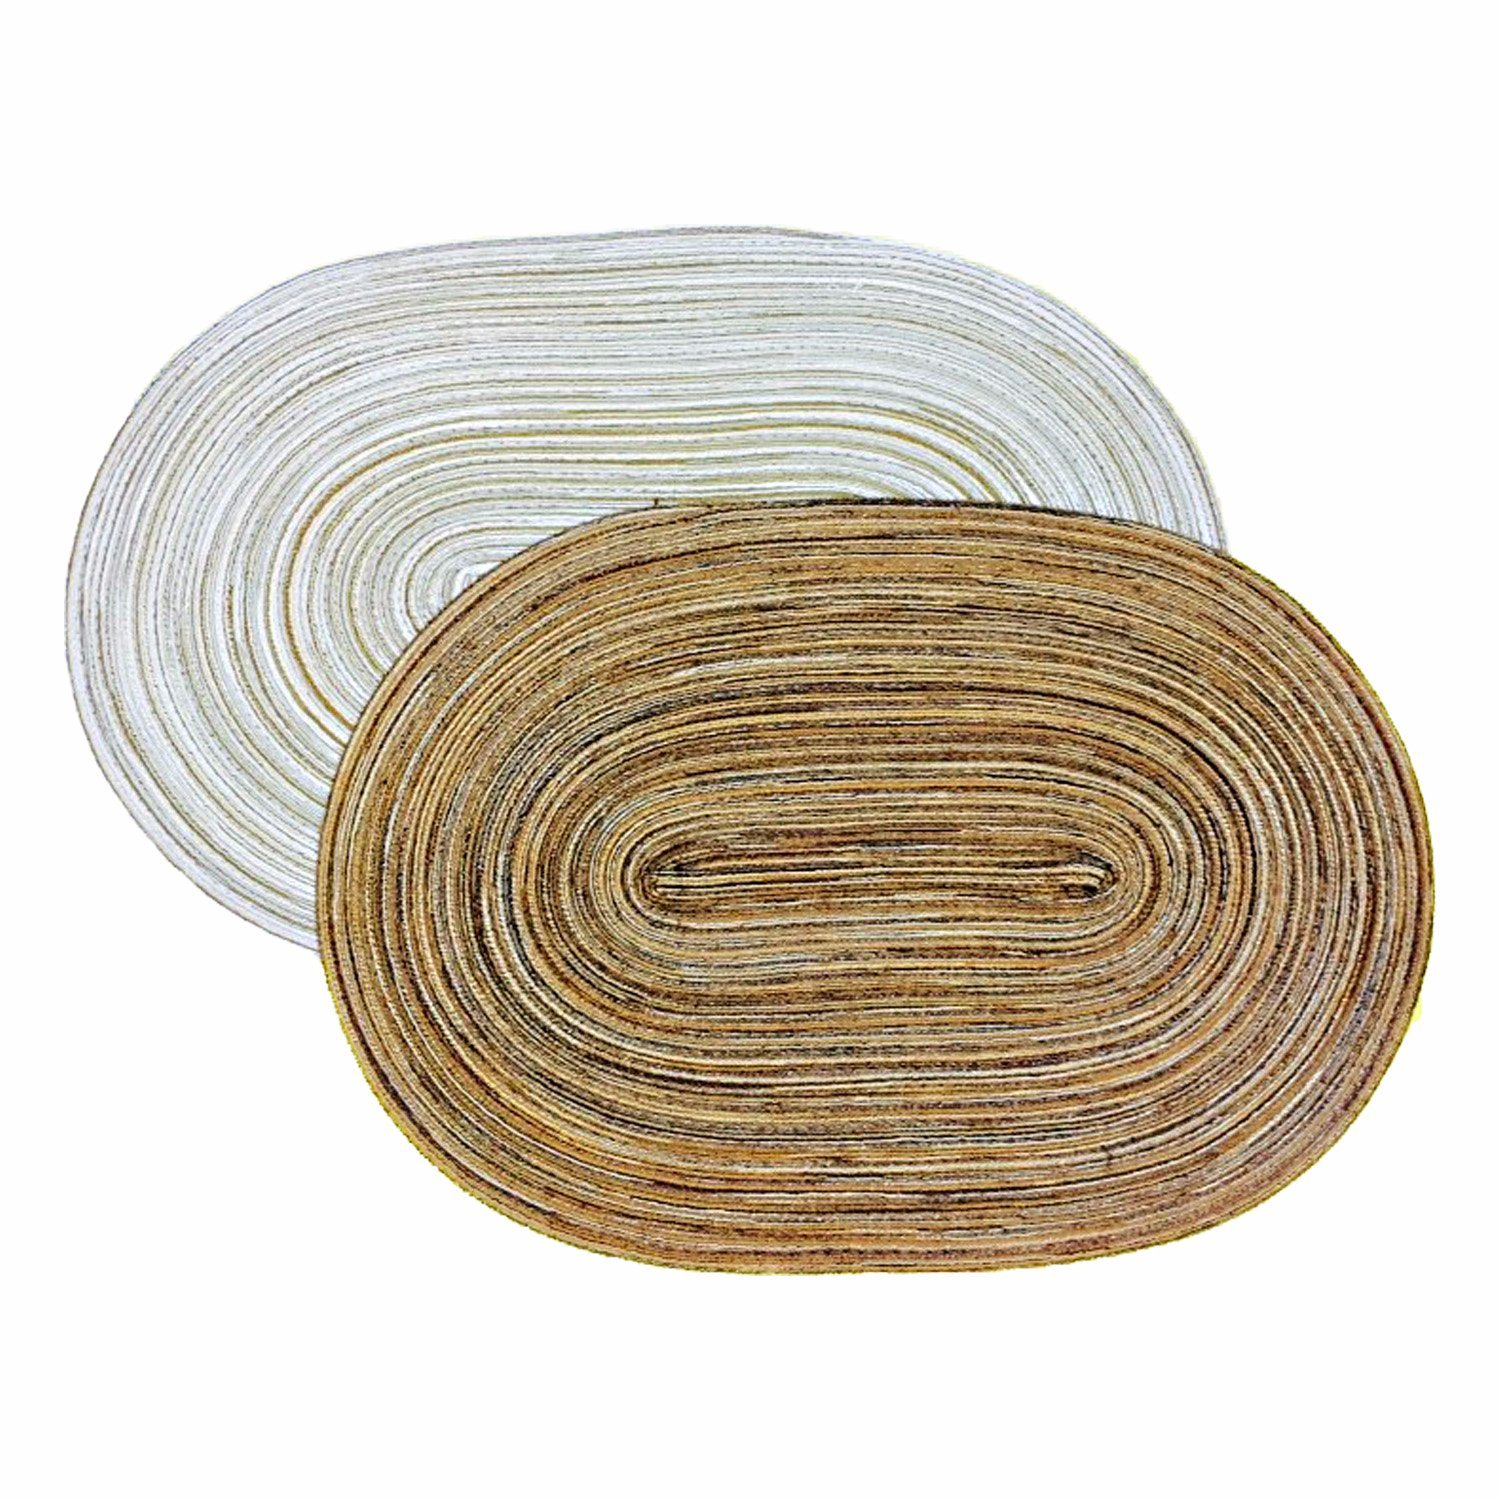 100% PP Oval Placemat for Tabletop & Flooring